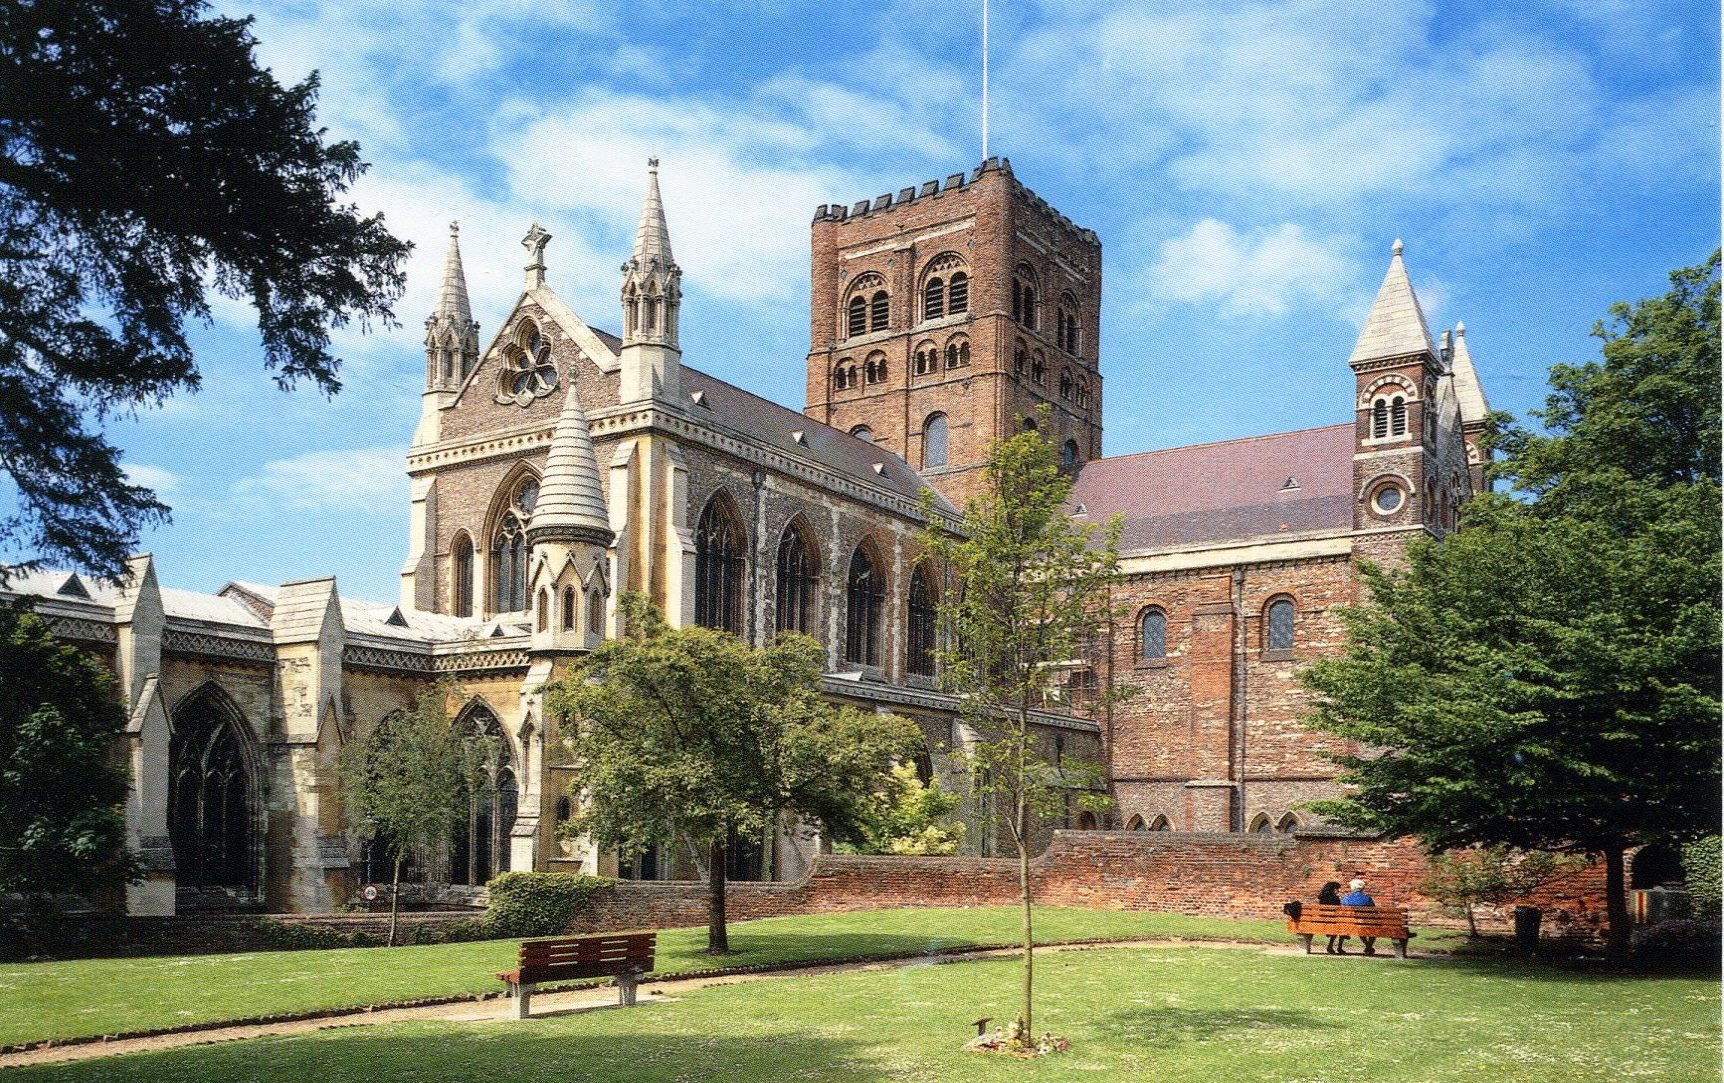 MAY 2020 - St. Albans Cathedral